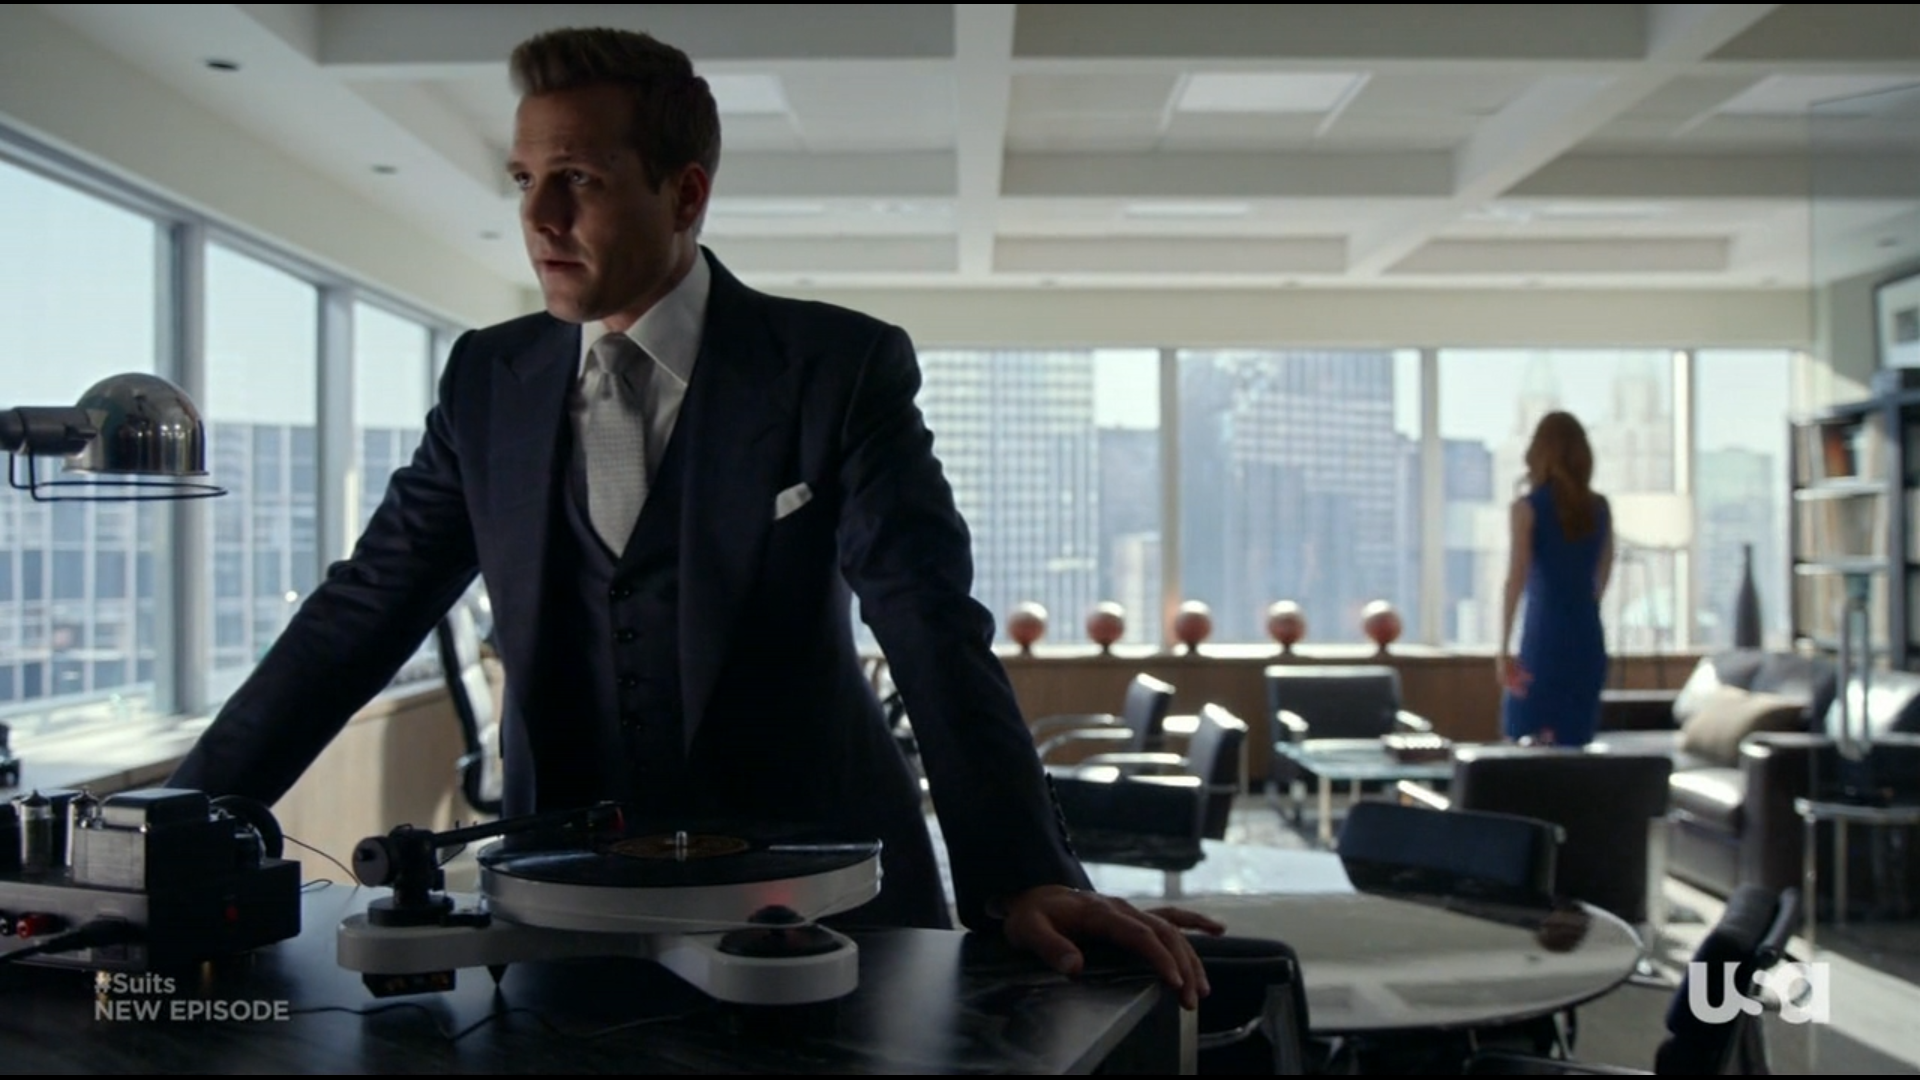 suits harvey specter office episode for the win usa harvey suits record player 1072180 hd wallpaper backgrounds download harvey suits record player